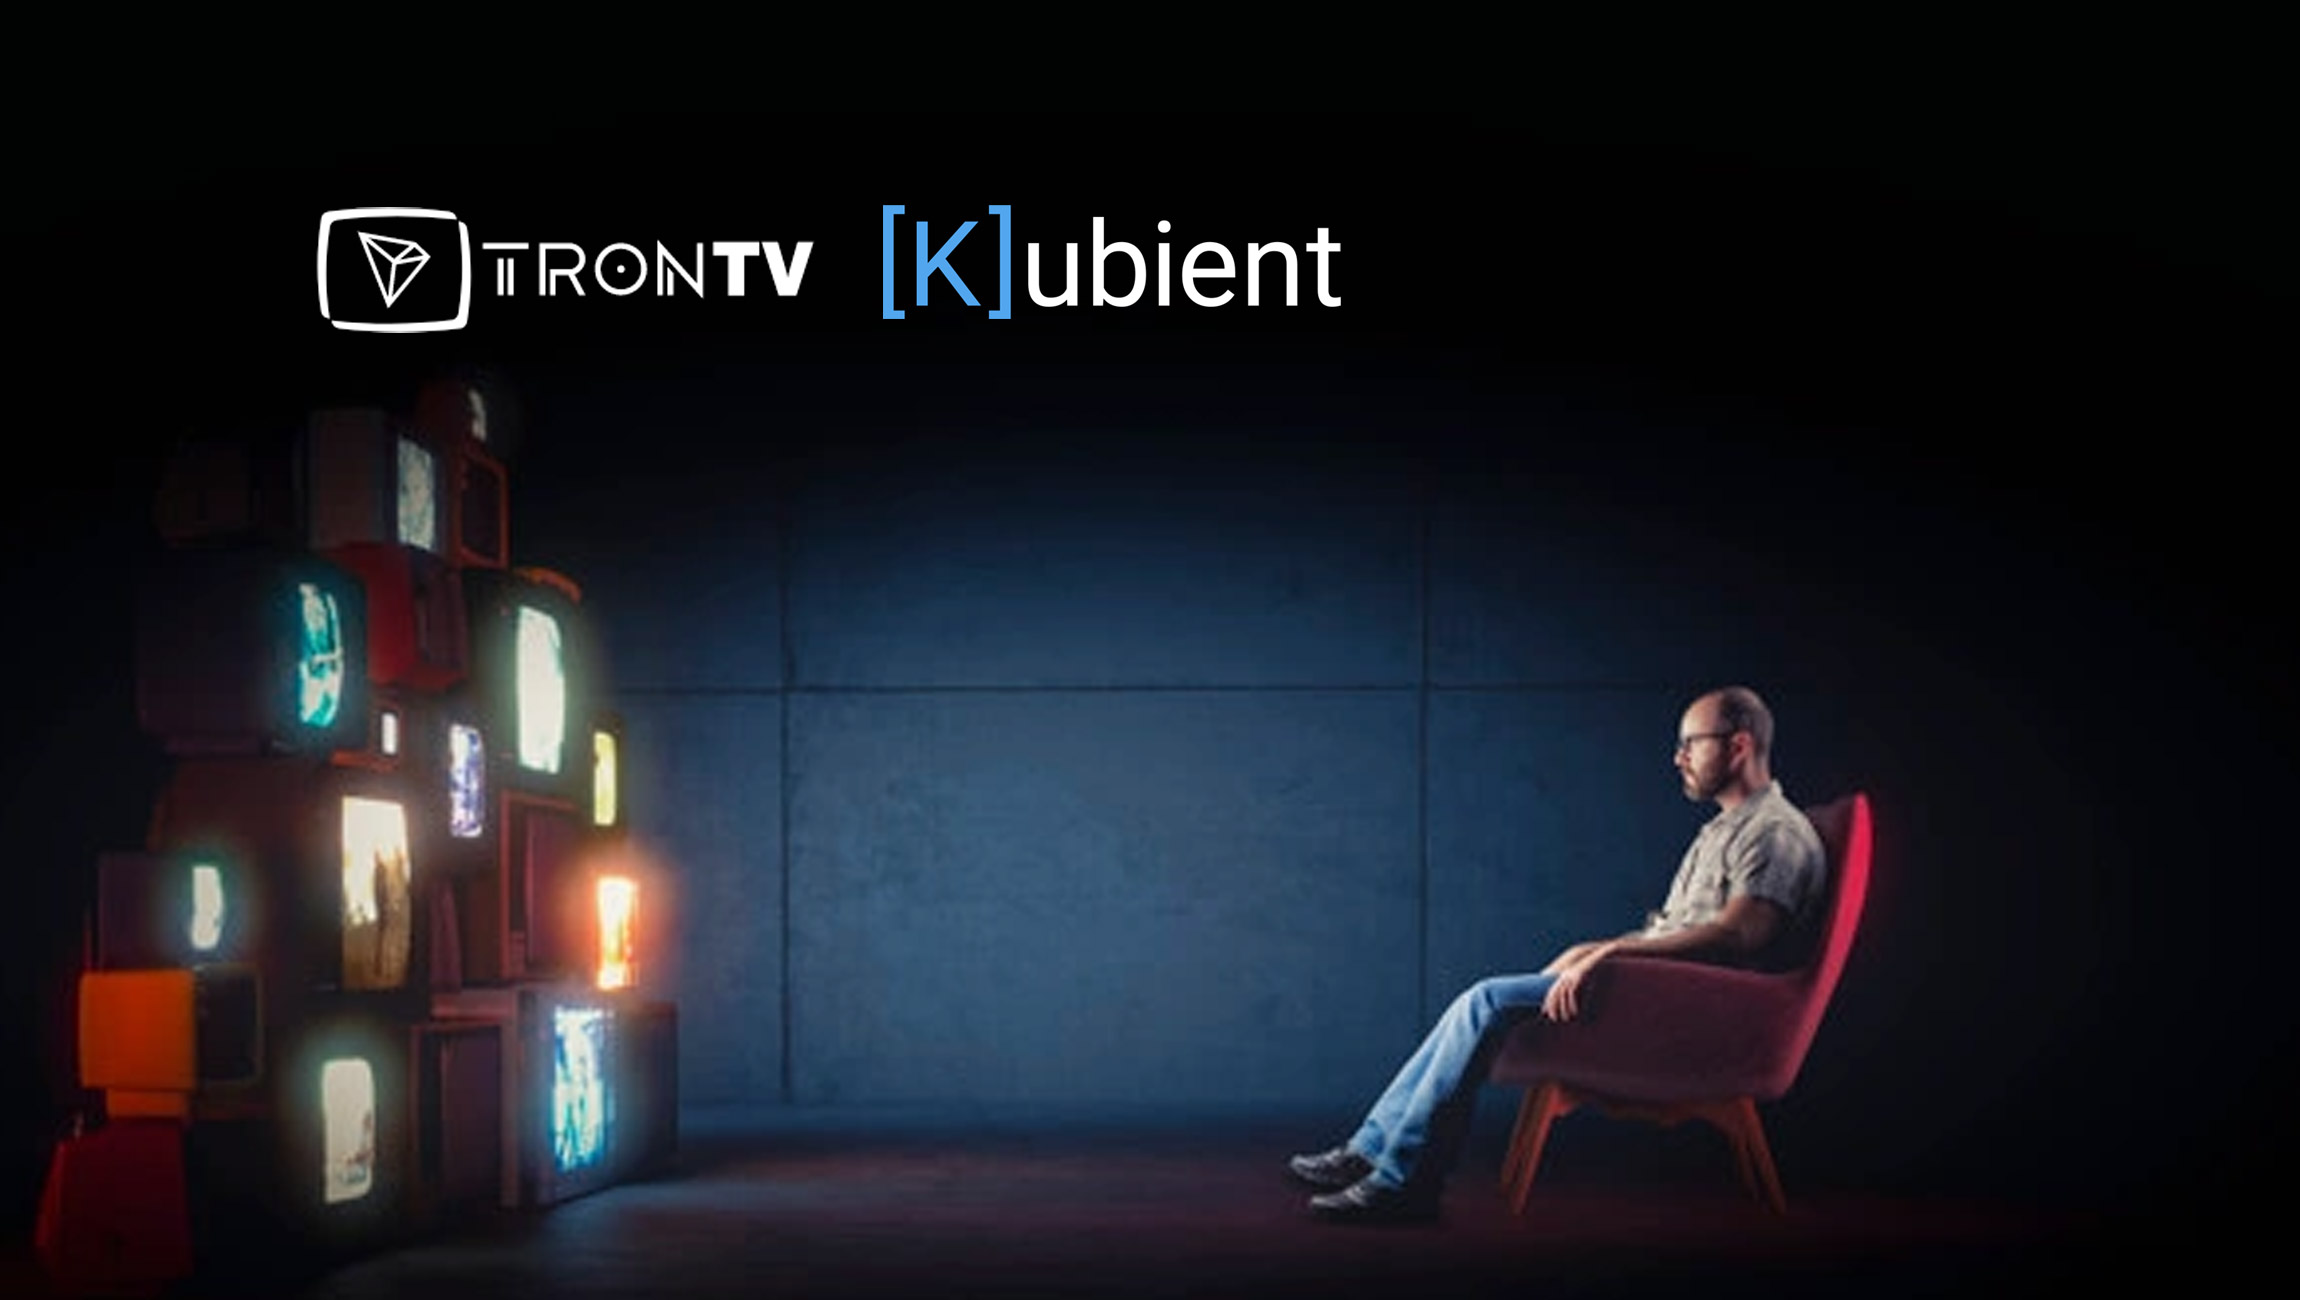 TronTV Selects Kubient as Premiere Transparent Programmatic Partner for Ad Fraud Prevention Through KAI